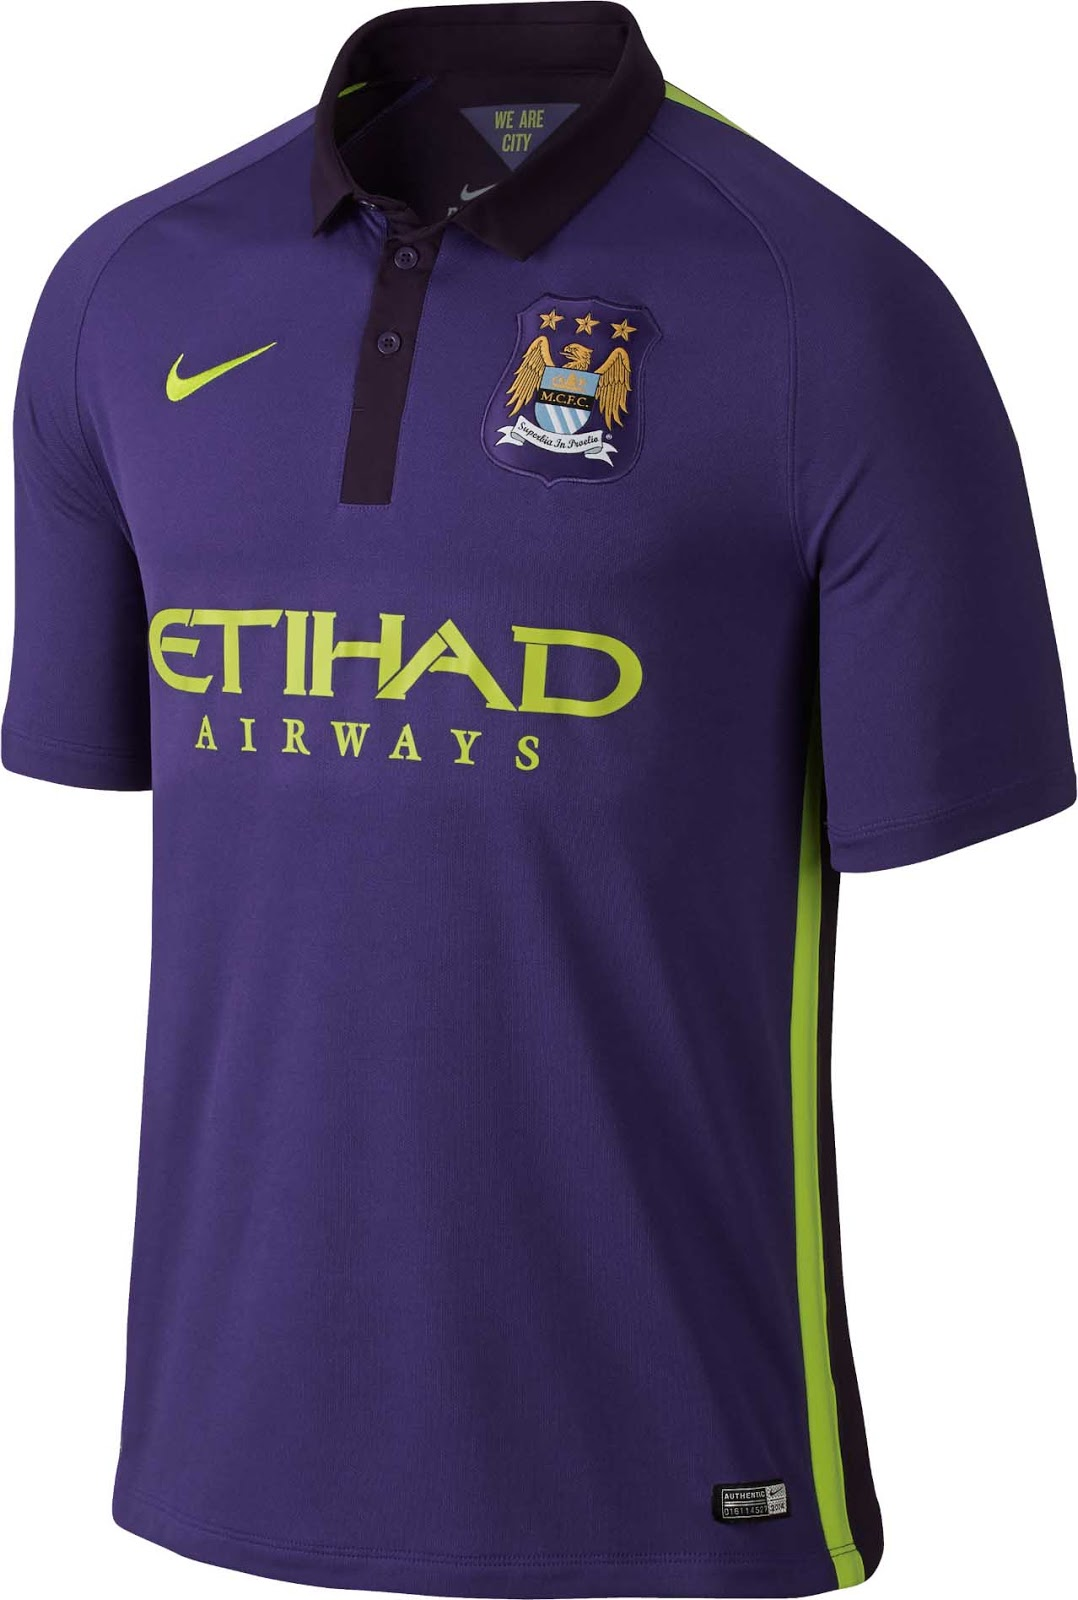 The new Manchester City 2014-15 Third Jersey is based on the same template  as the Barcelona 14-15 Third Kit 6c74eb470d97